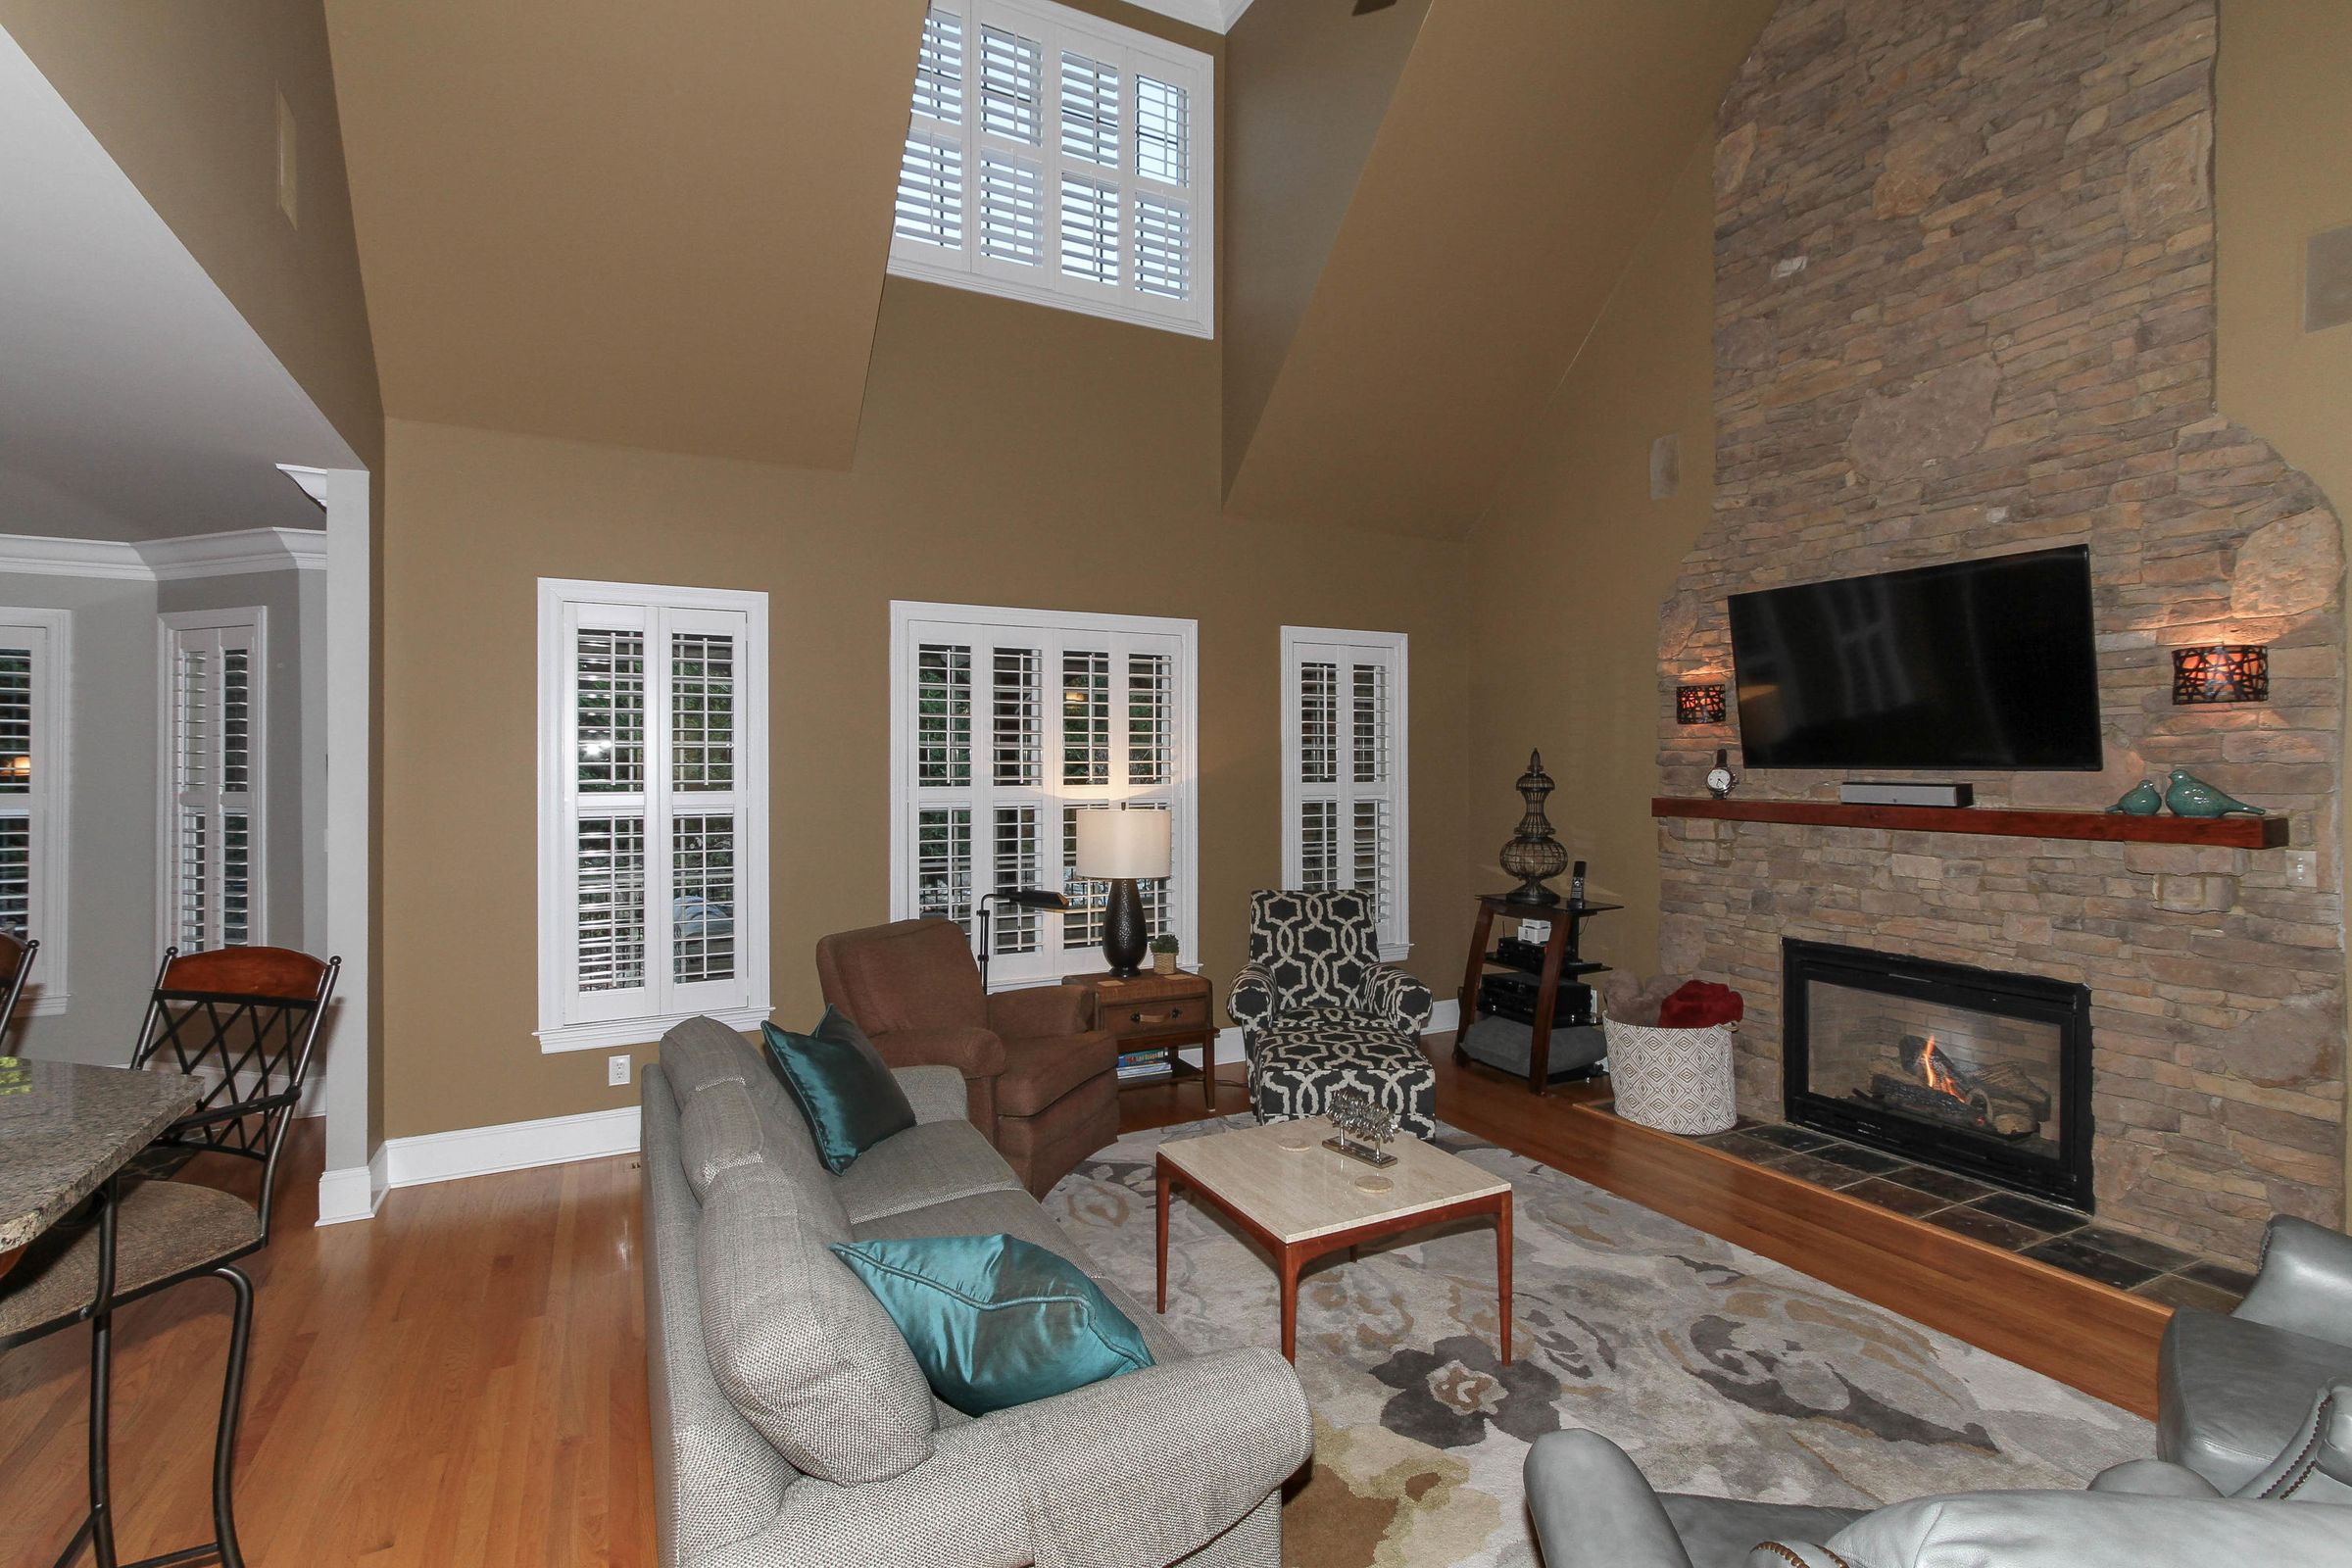 08 - Vaulted Great Room with Stone Firep